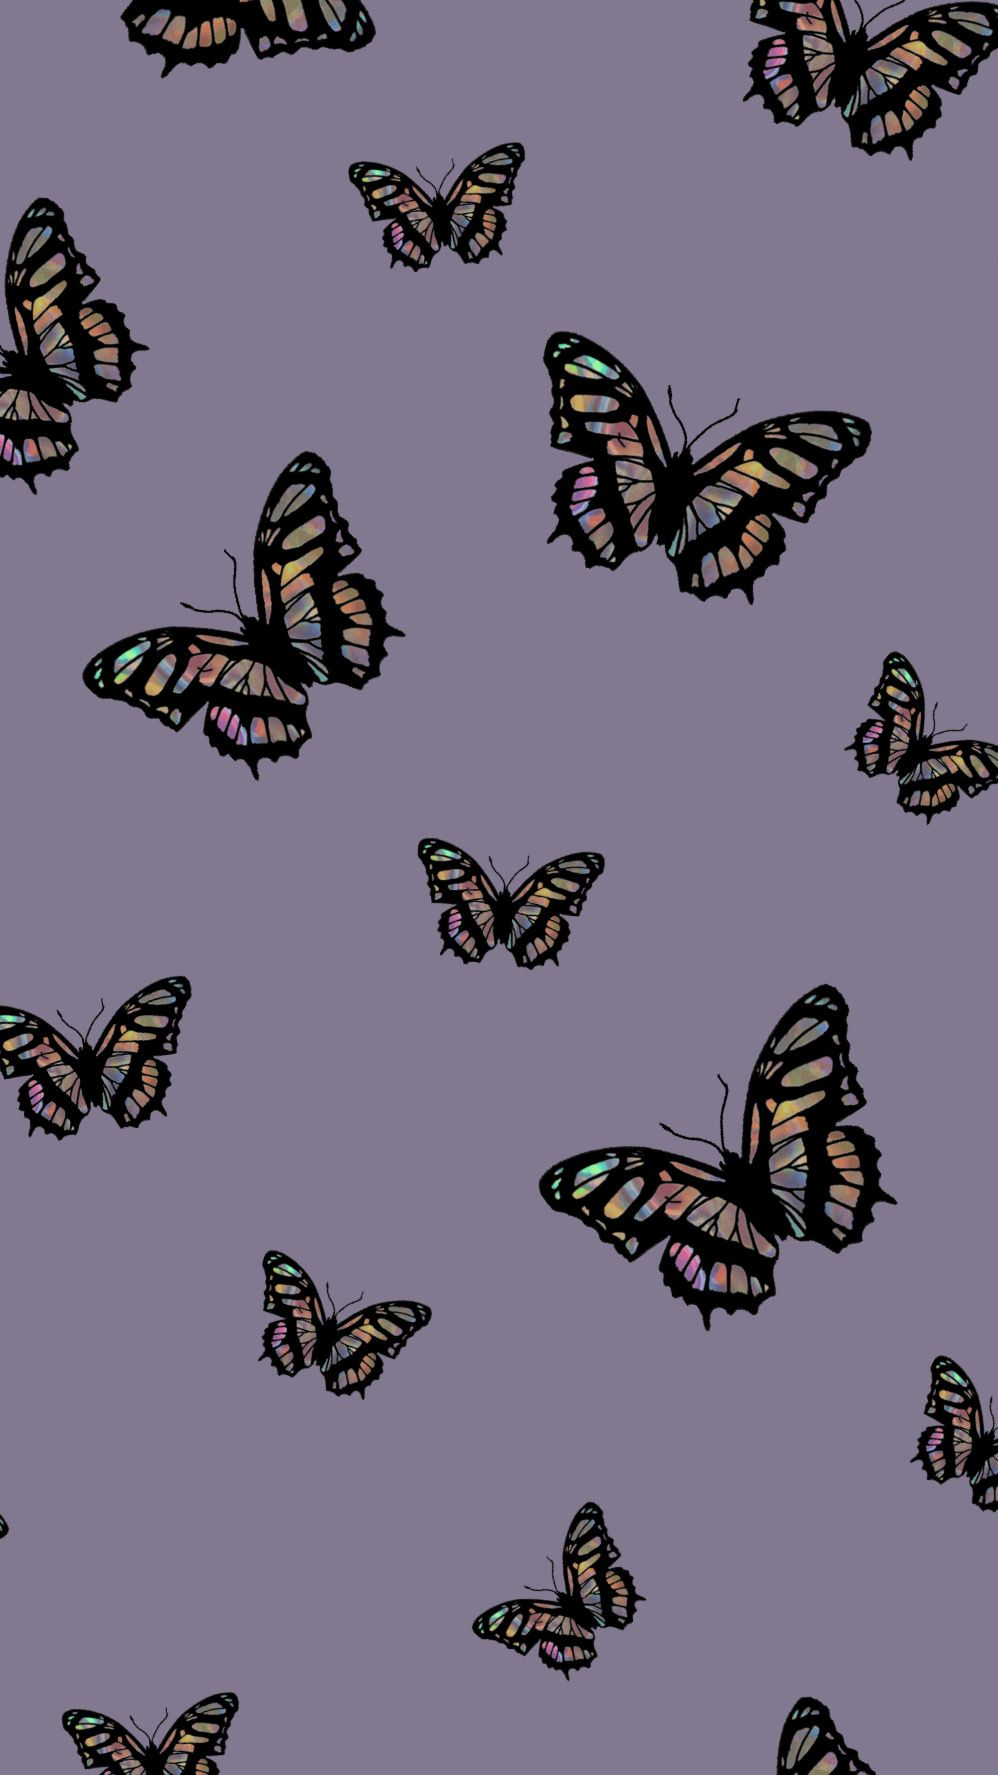 Pin By Kimberly Stambach On Wallpaper Backgrounds Butterfly Wallpaper Iphone Wallpaper Iphone Cute Cute Wallpaper Backgrounds